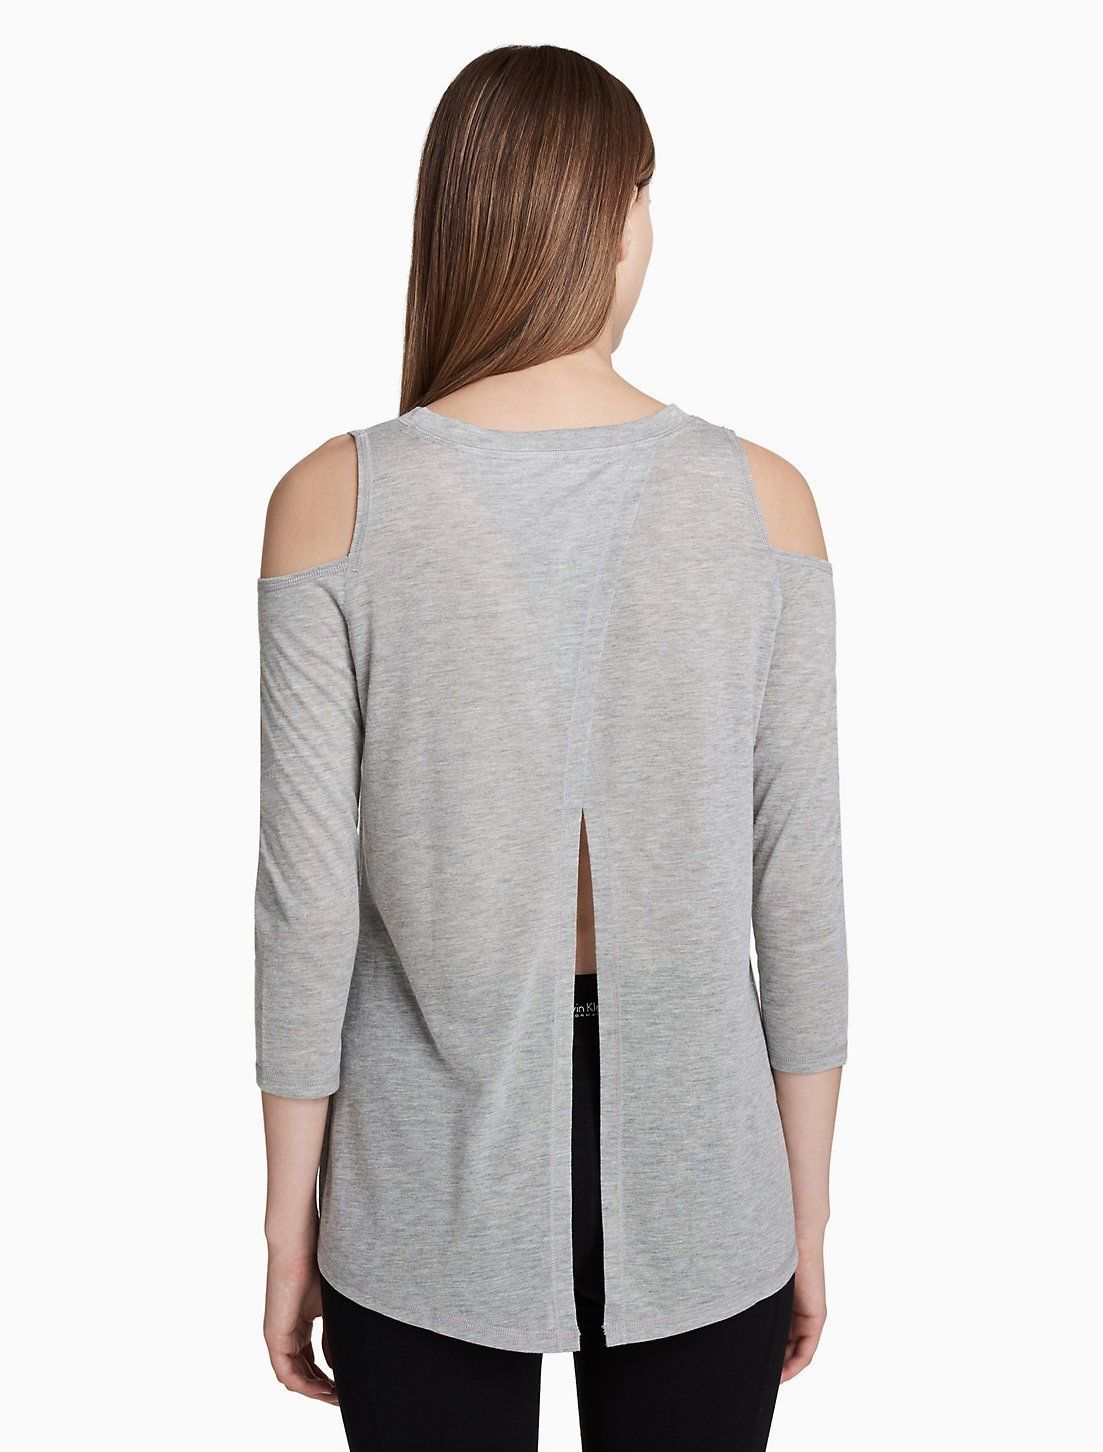 Calvin Klein Performance Cold-Shoulder Tie-Back Top PF8T2828 Grey Citrus Yellow image 2